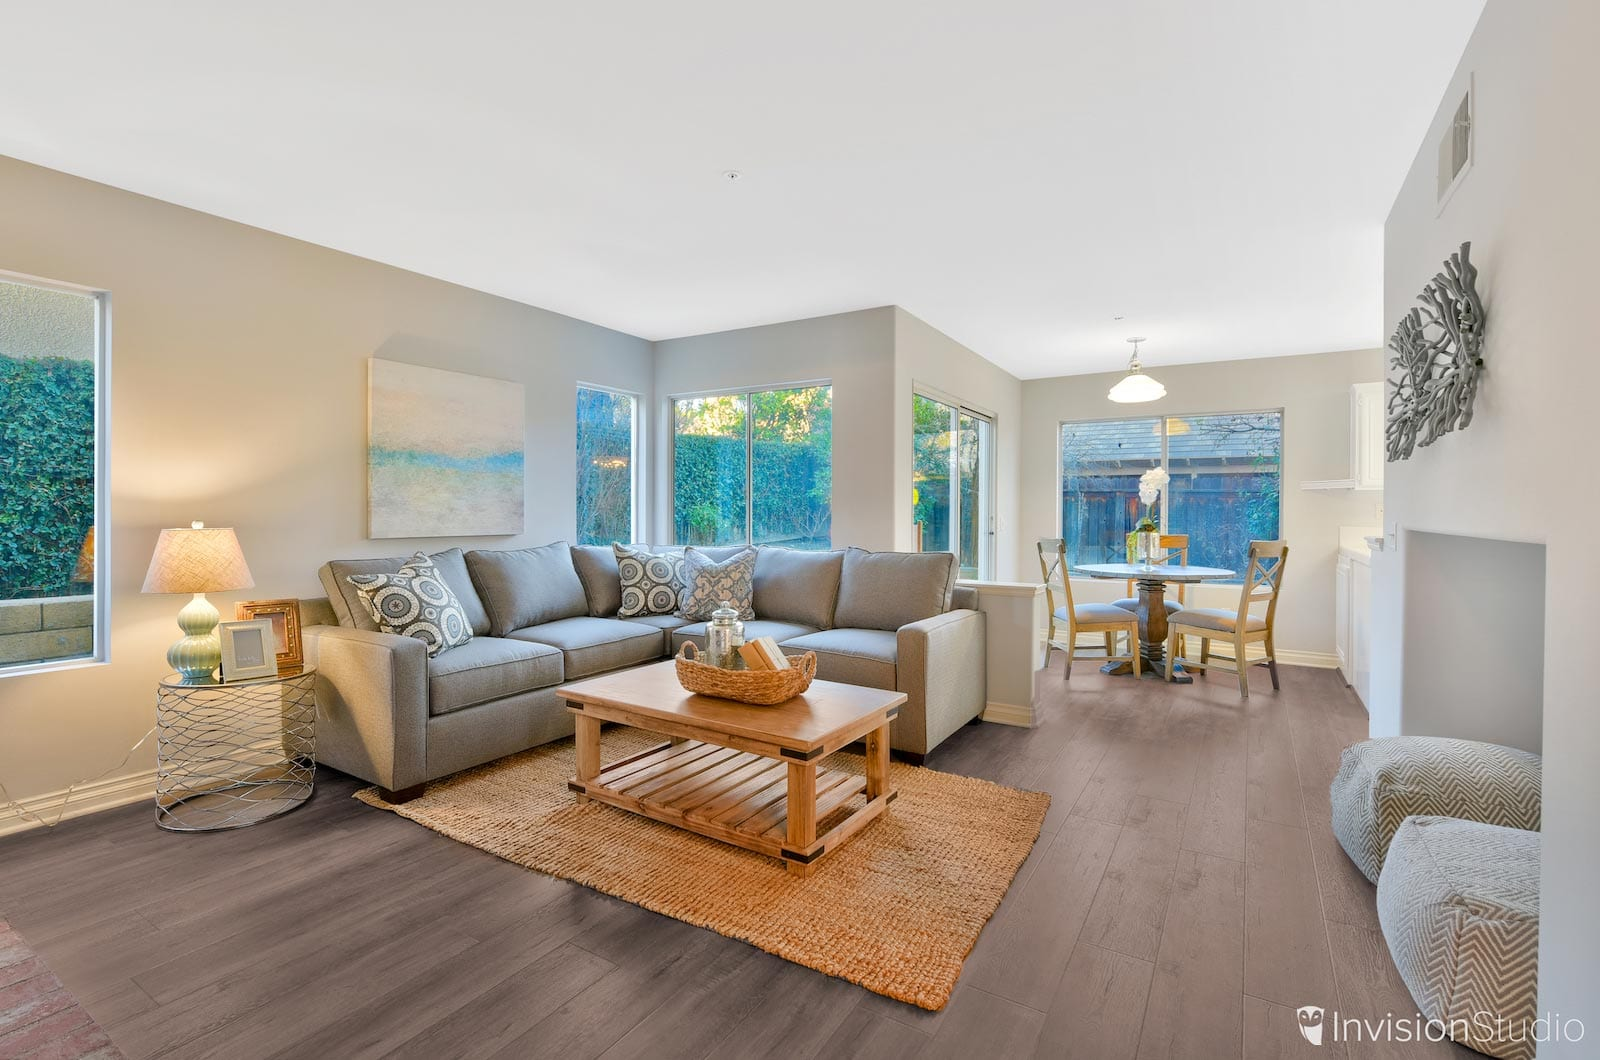 Living Room 1 | Orange County HDR Real Estate Photographer | Orange County Virtual Tour Photographer